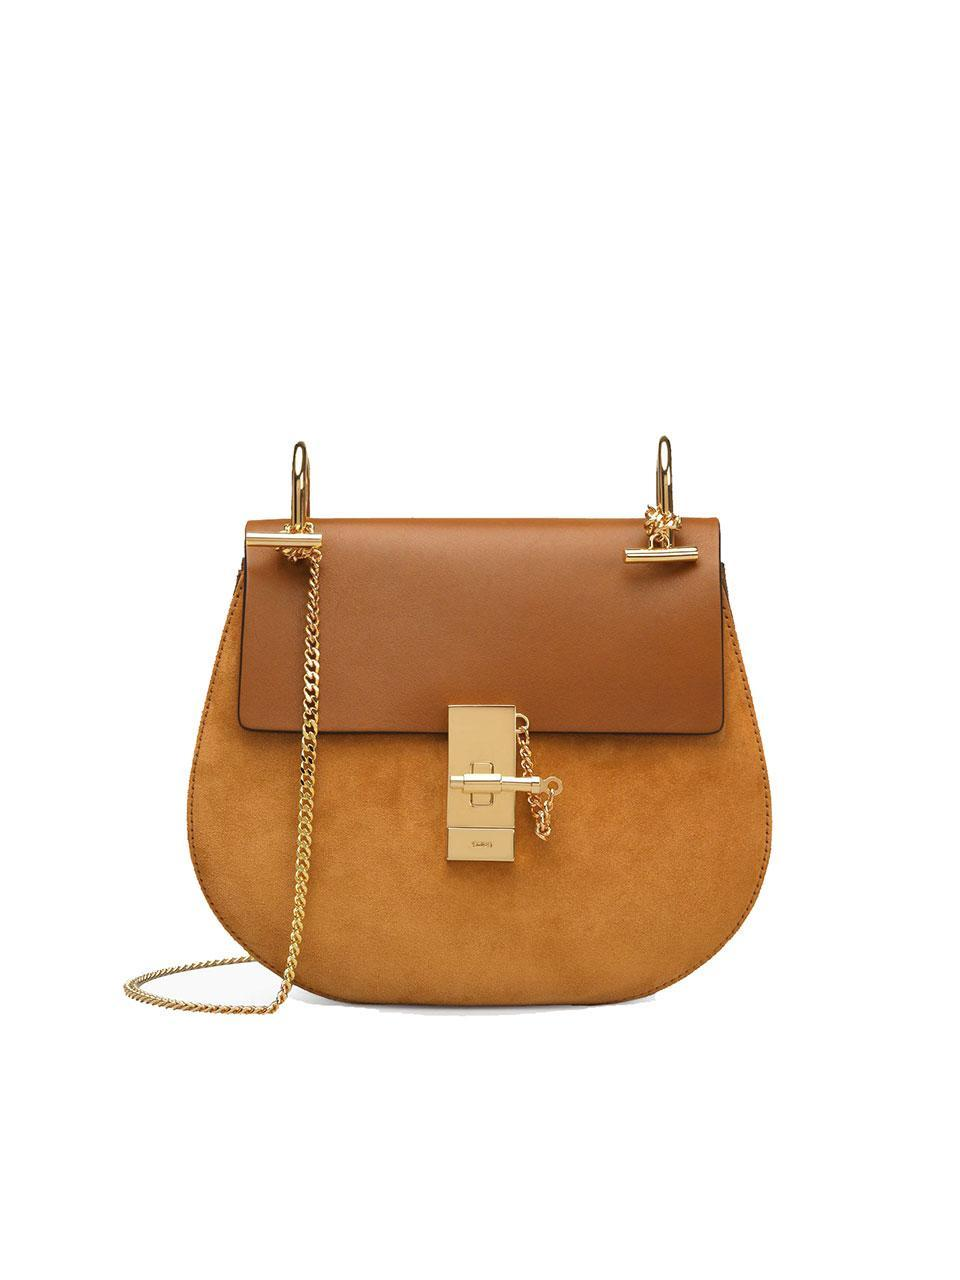 <p>The Drew Shoulder Bag in suede calfskin and smooth calfskin, $1,950. (Photo: Chloé) </p>